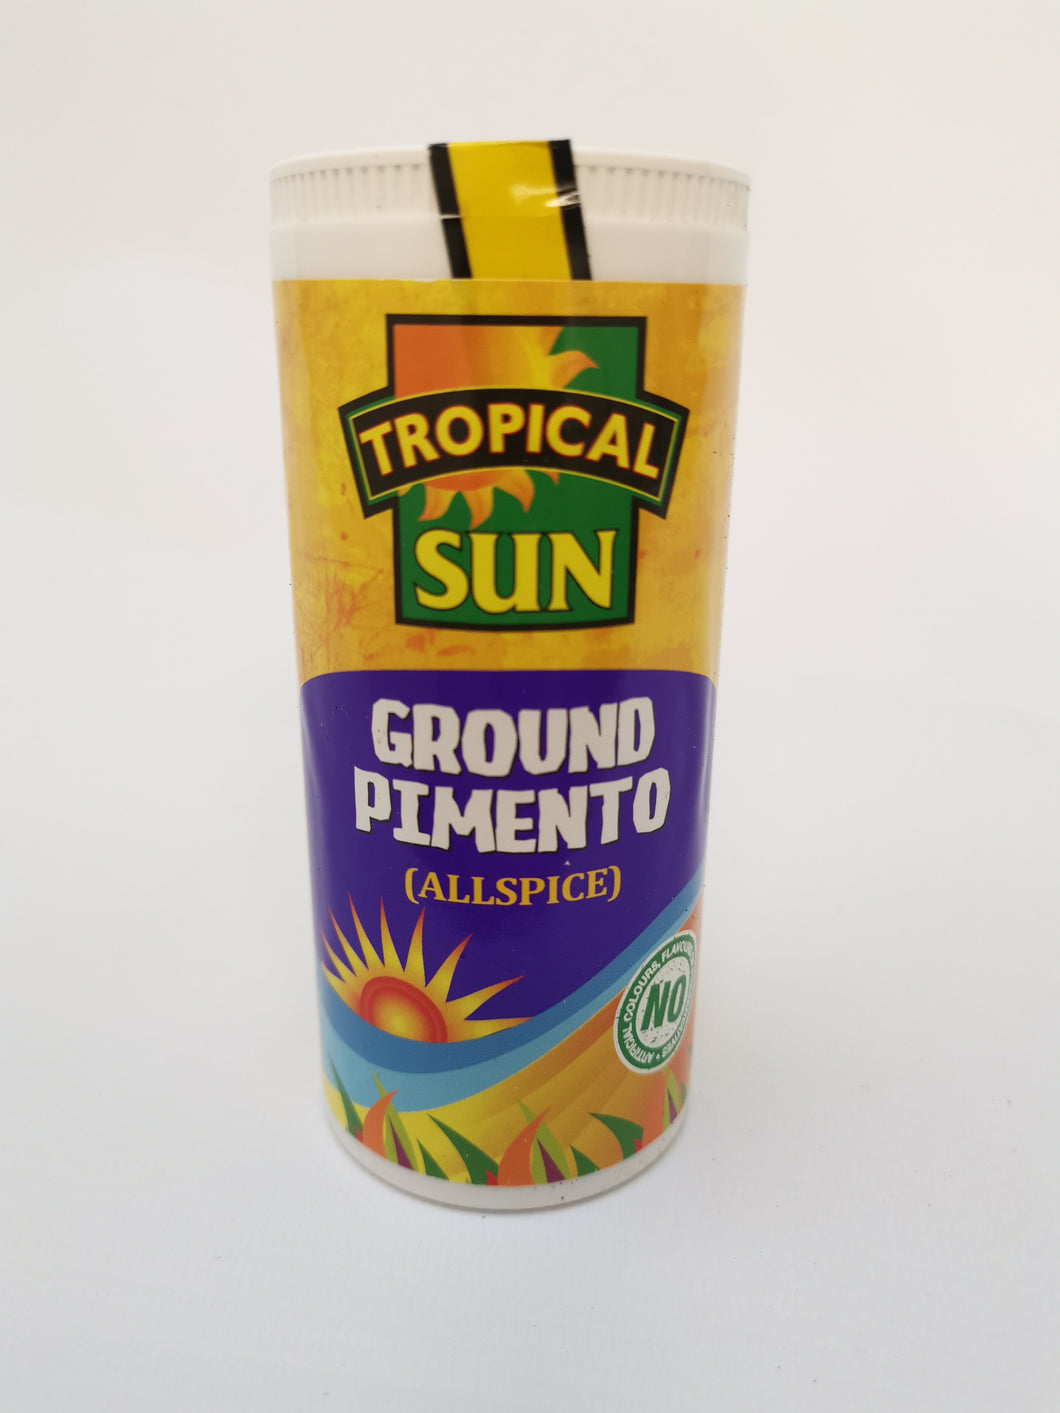 Tropical Sun Ground Pimento (Allspice) 100g